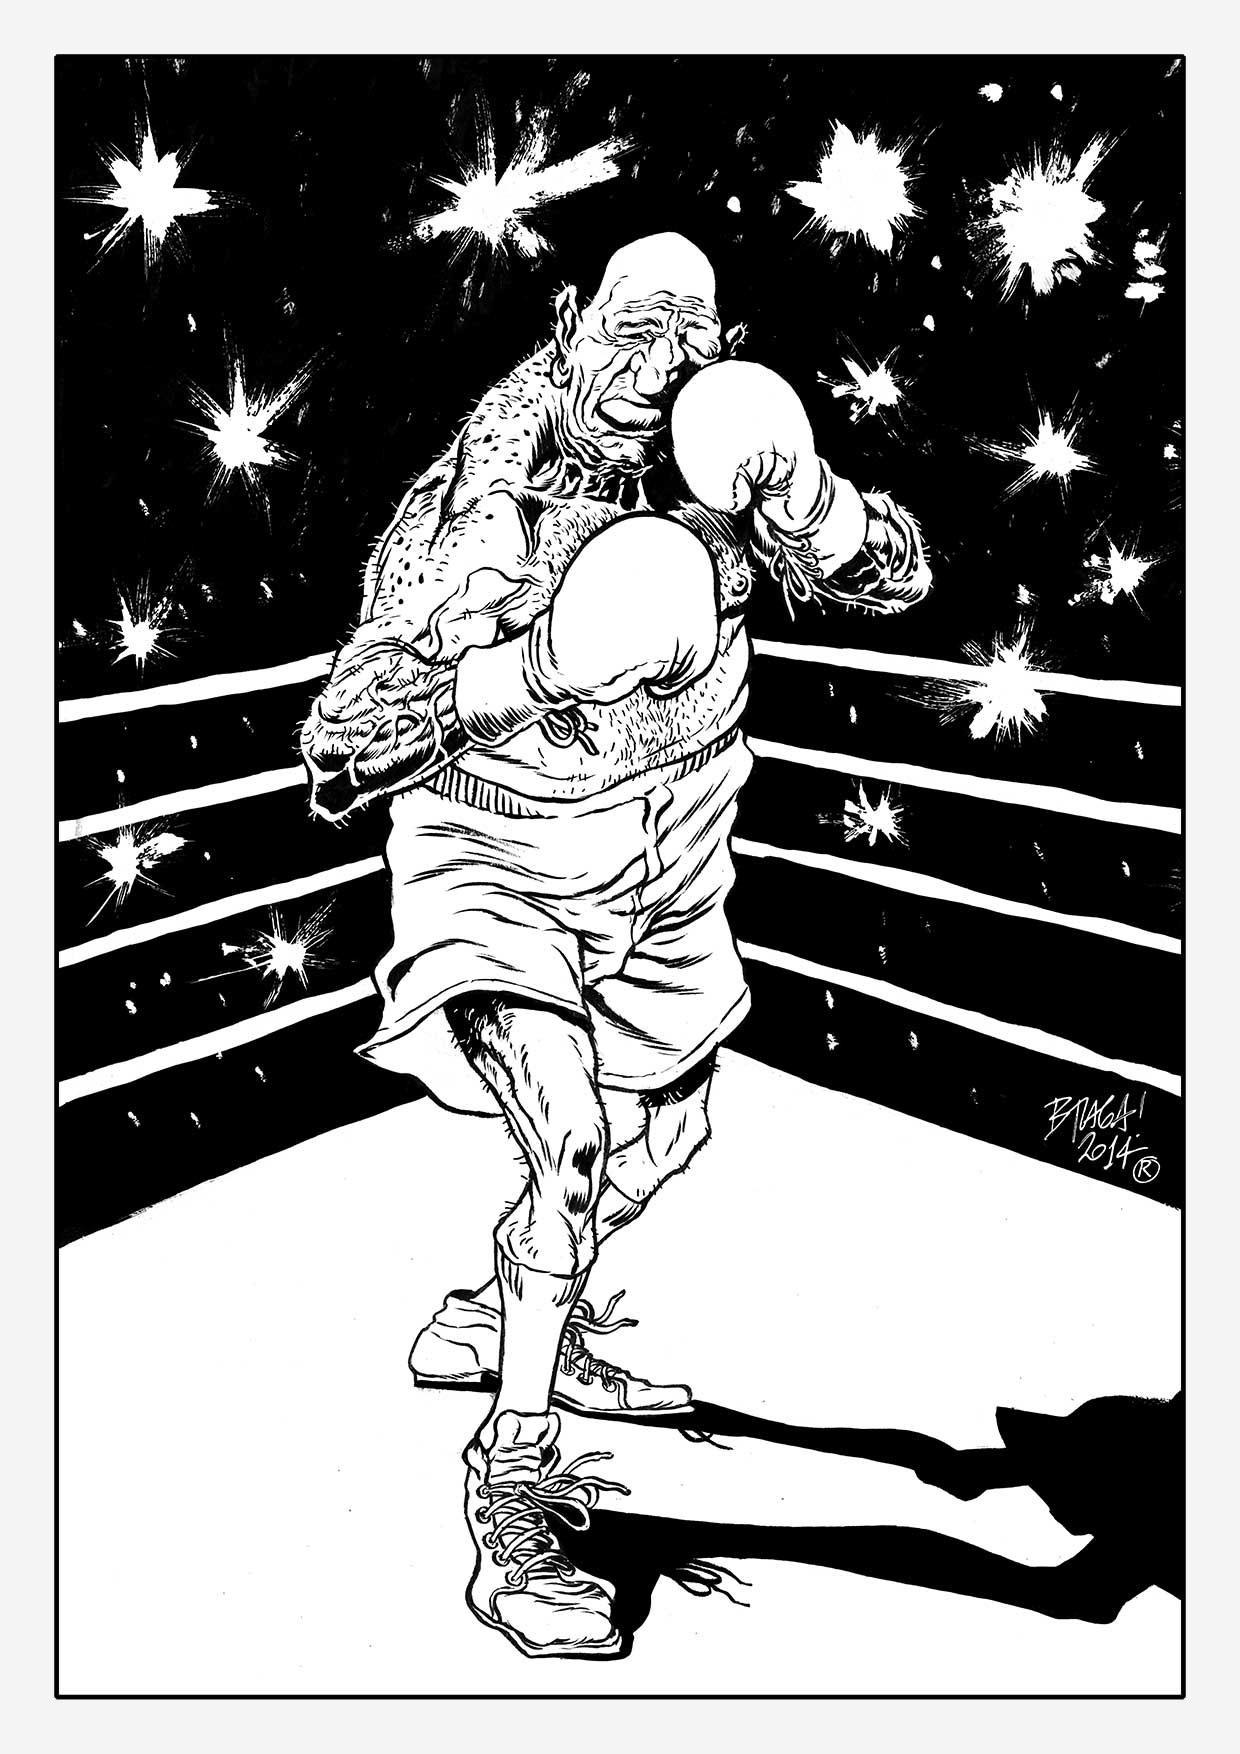 diburros-sketchbook-boxe-old-franga